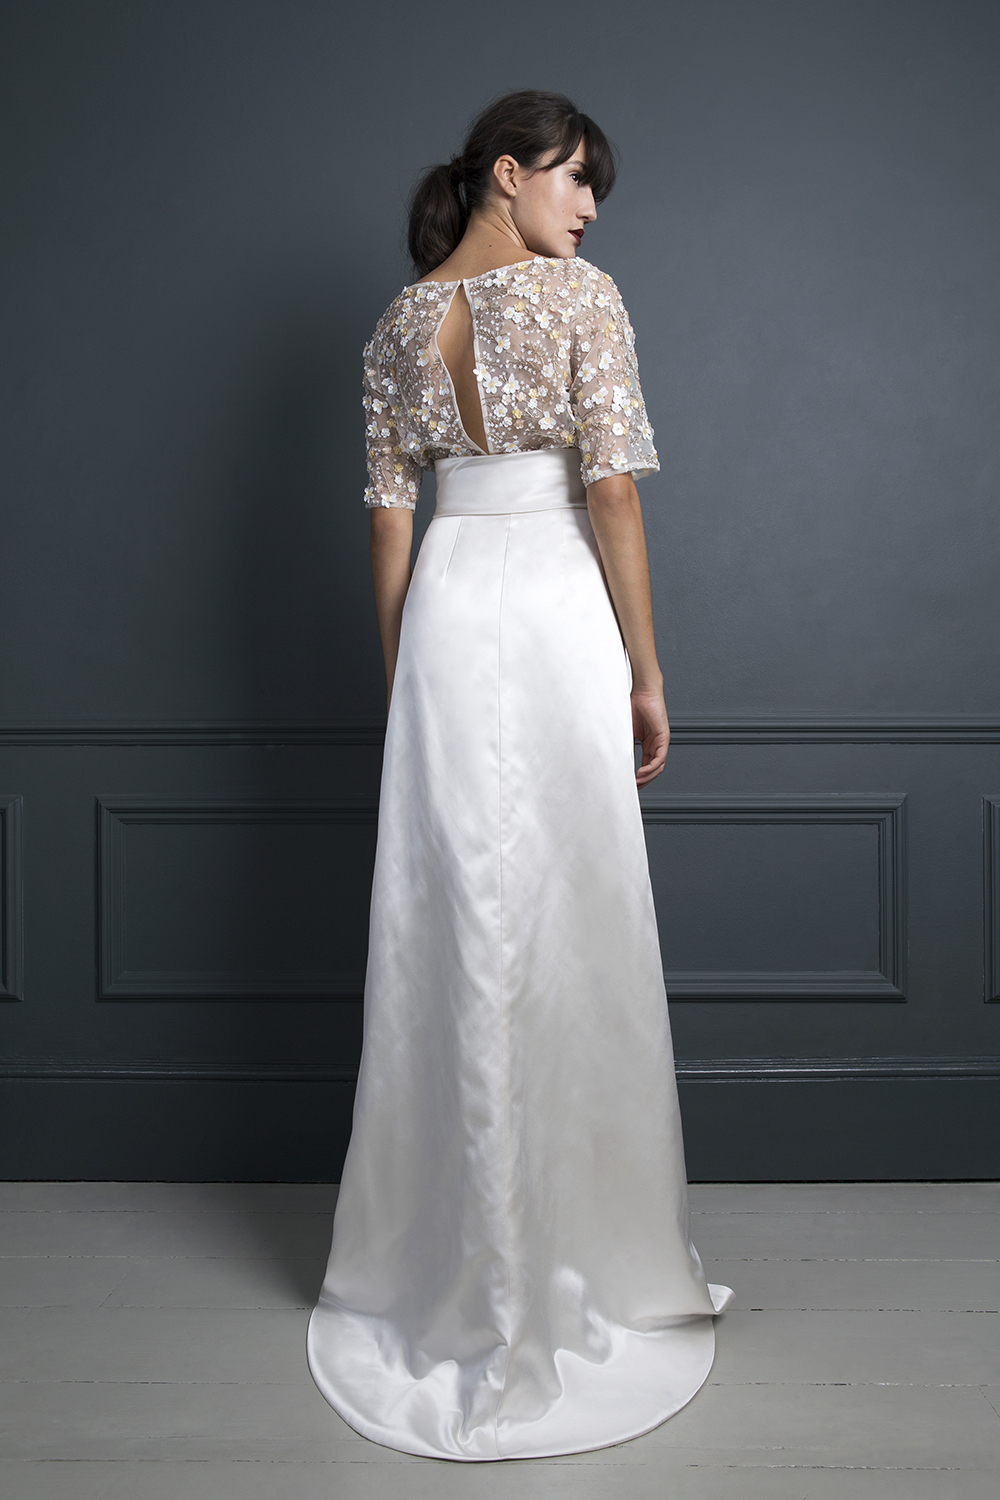 ITALIAN COCKTAIL SKIRT & RAF JACKET | WEDDING DRESS BY HALFPENNY LONDON